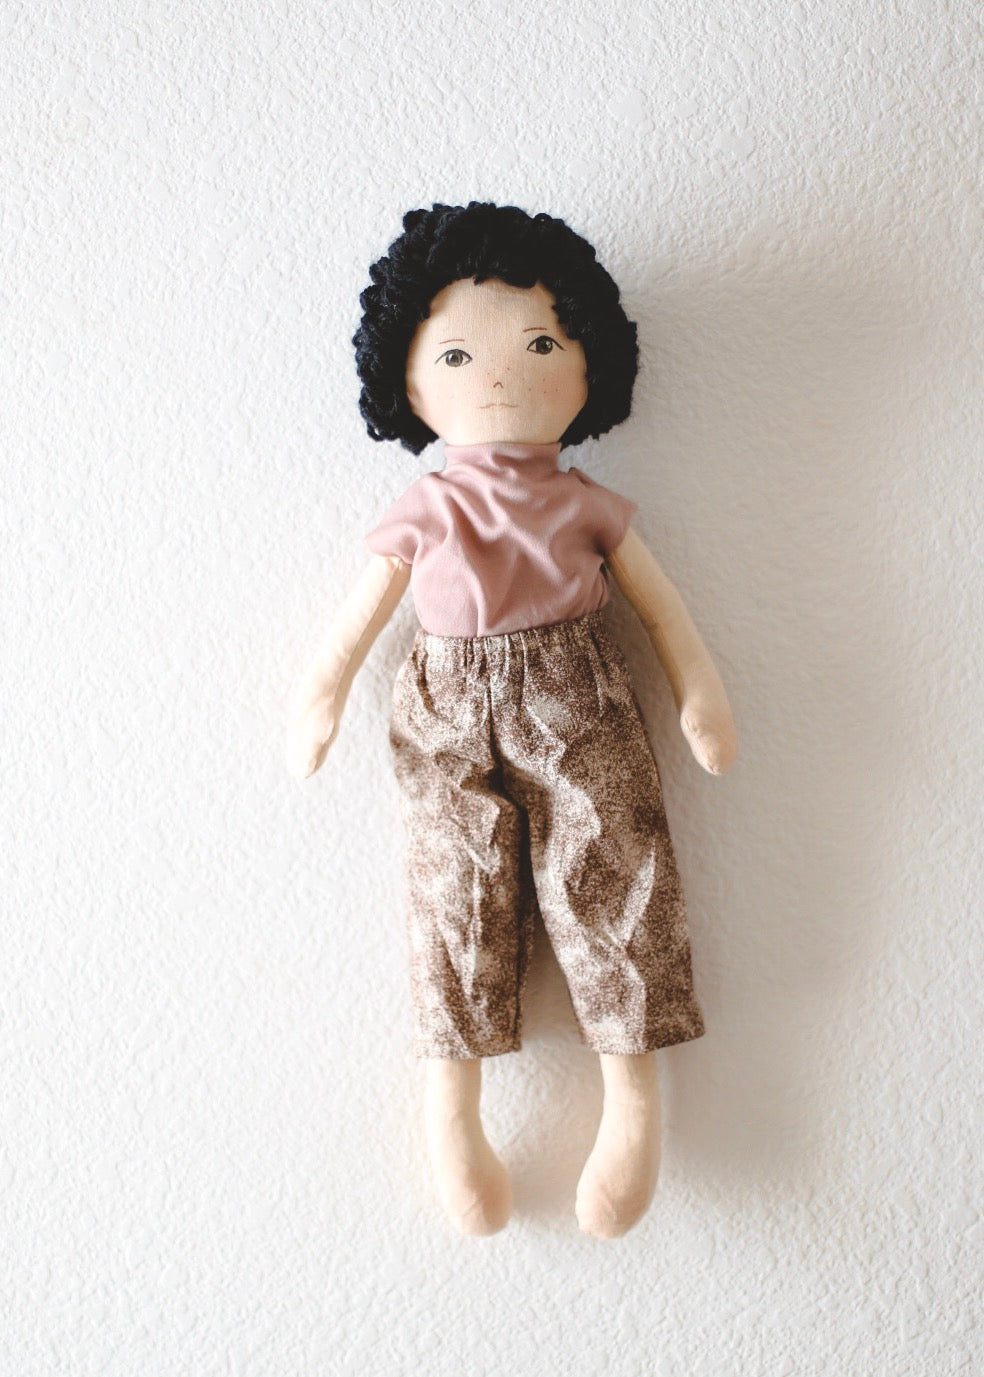 LOUIS - Handmade Heirloom Doll